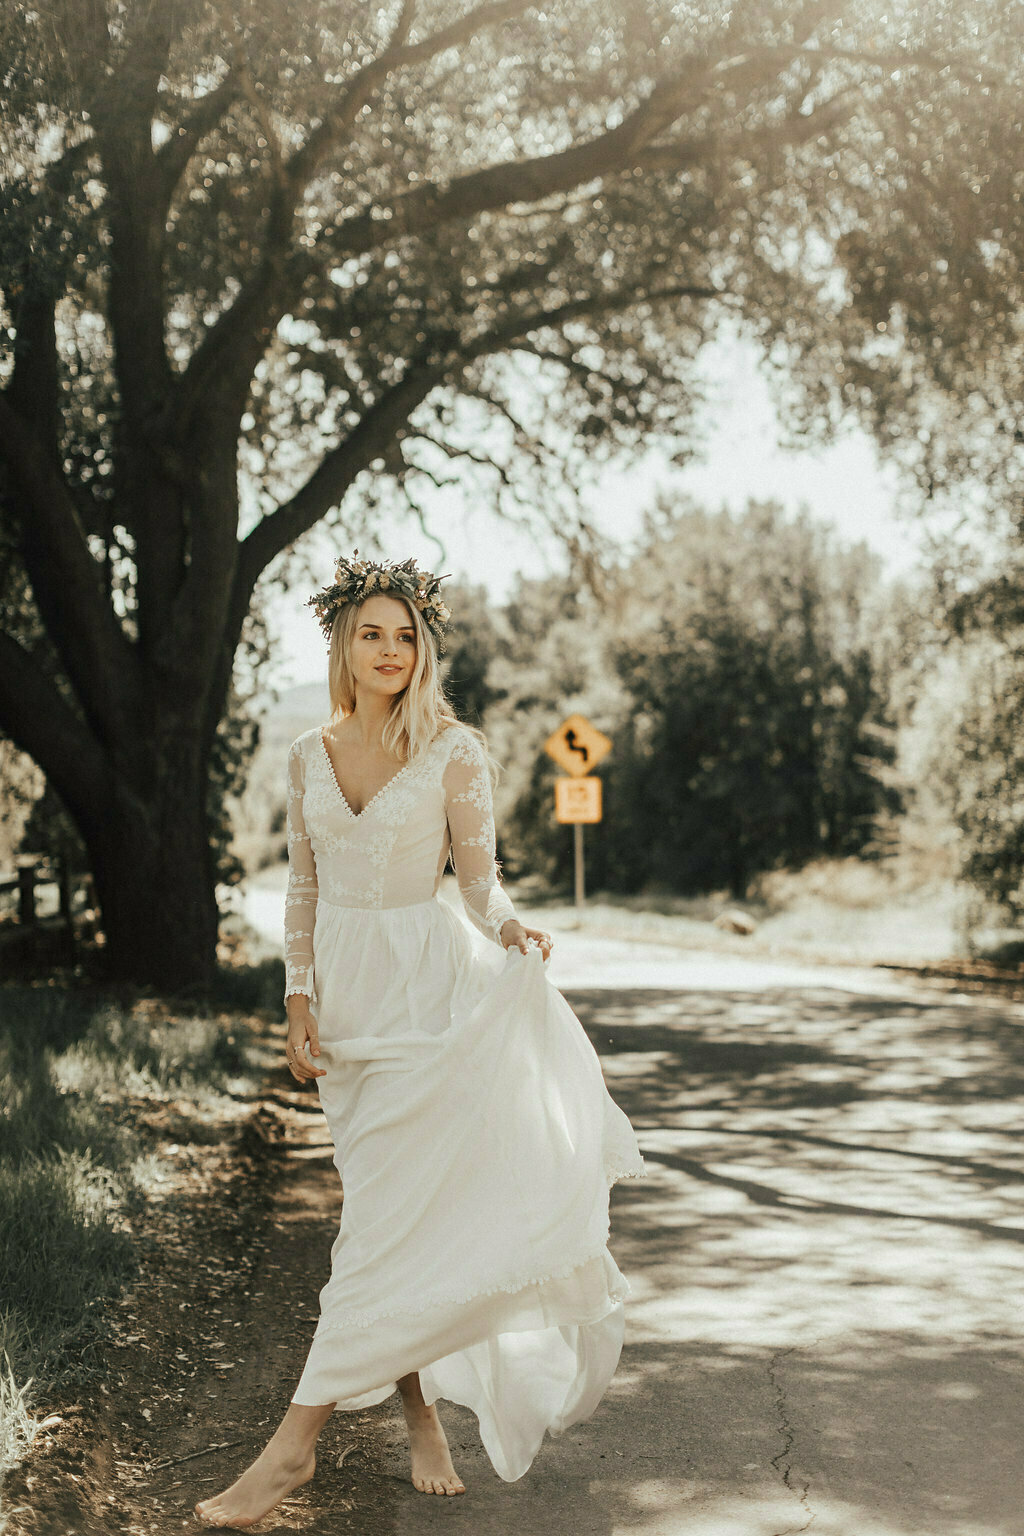 simple-wedding-dress-with-long-sleeves-sheer-open-back-v-neckline-bohemian-bride